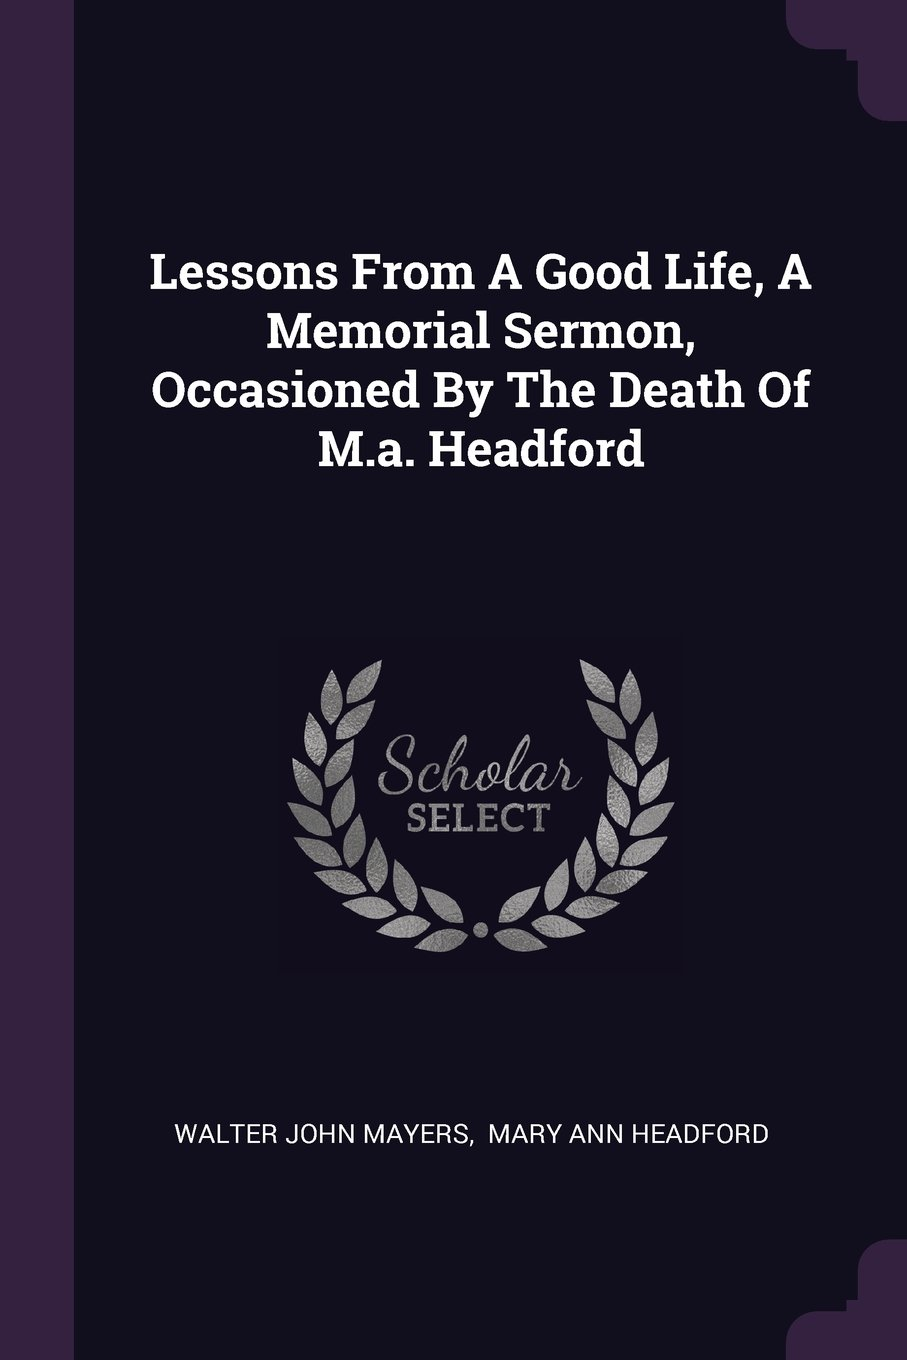 Download Lessons From A Good Life, A Memorial Sermon, Occasioned By The Death Of M.a. Headford ebook